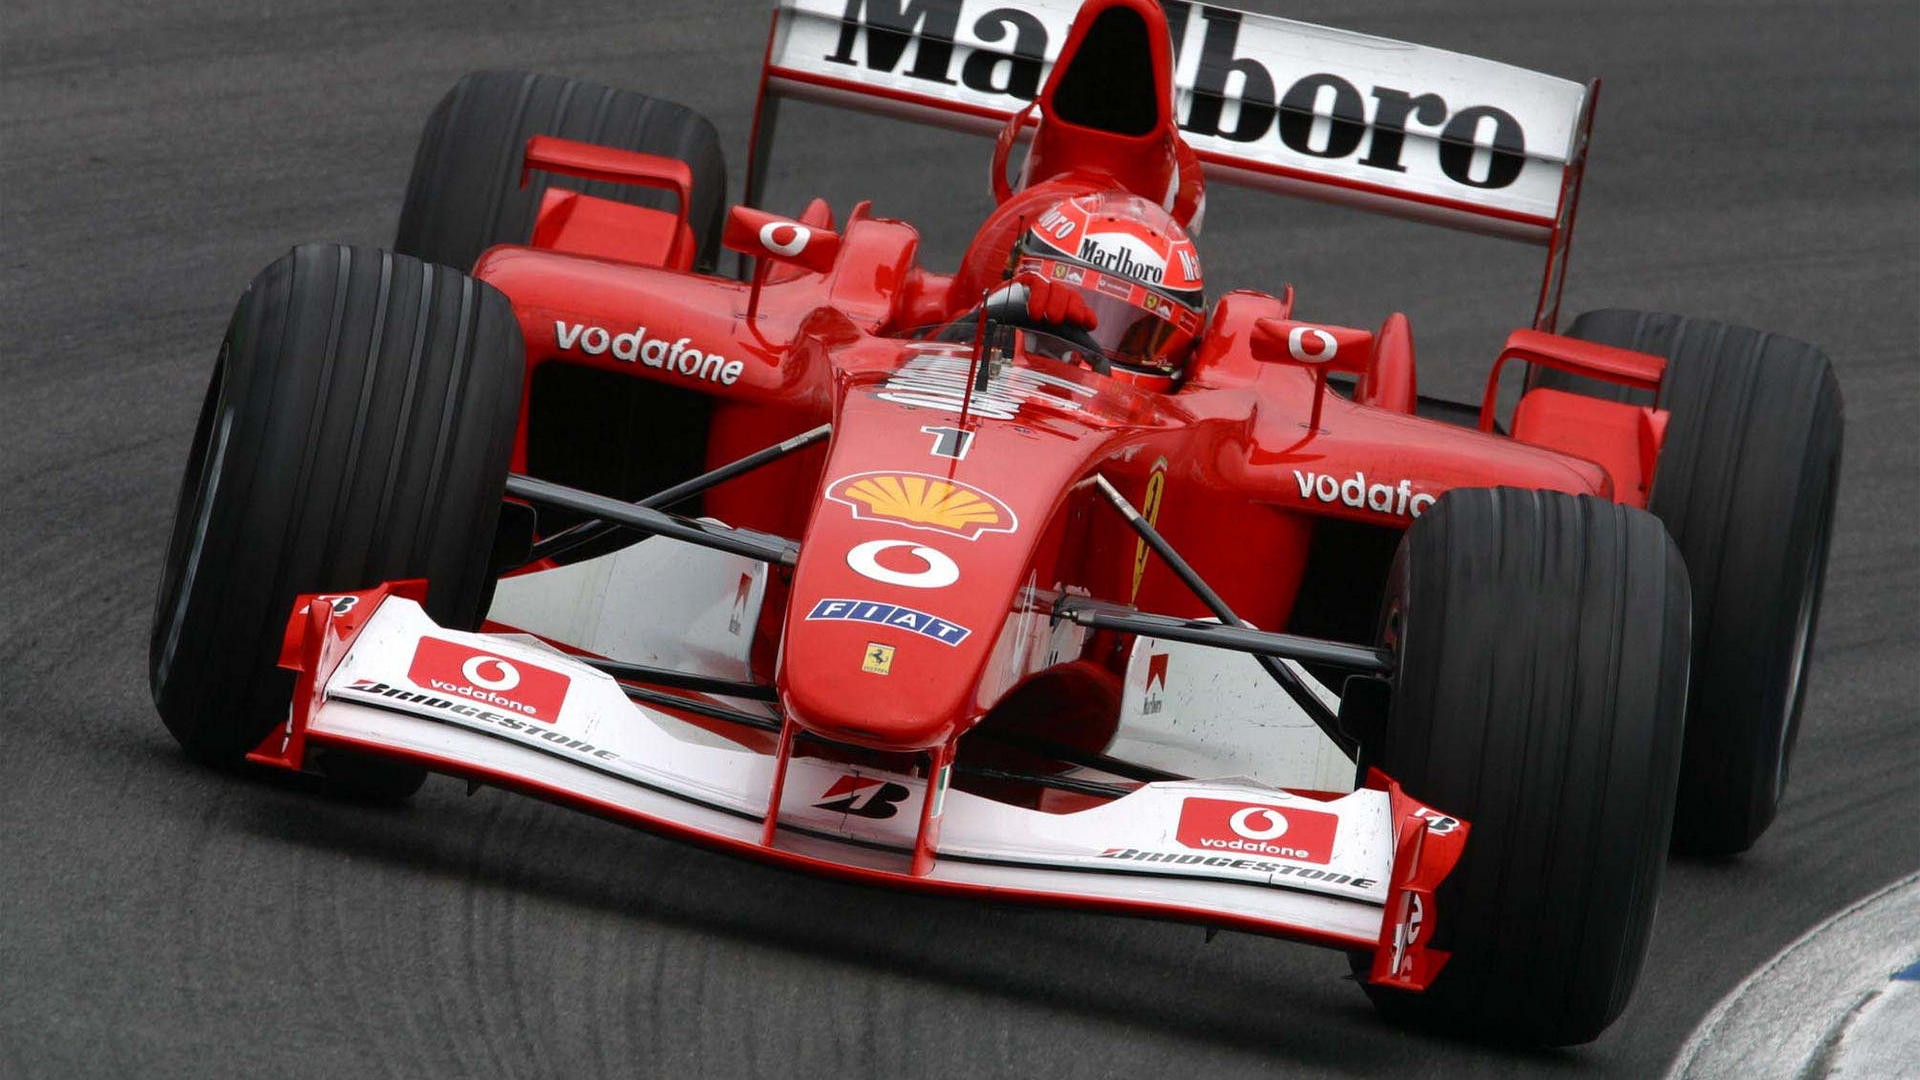 Schumacher Wallpaper ·① Download Free Awesome Wallpapers For Desktop Computers And Smartphones